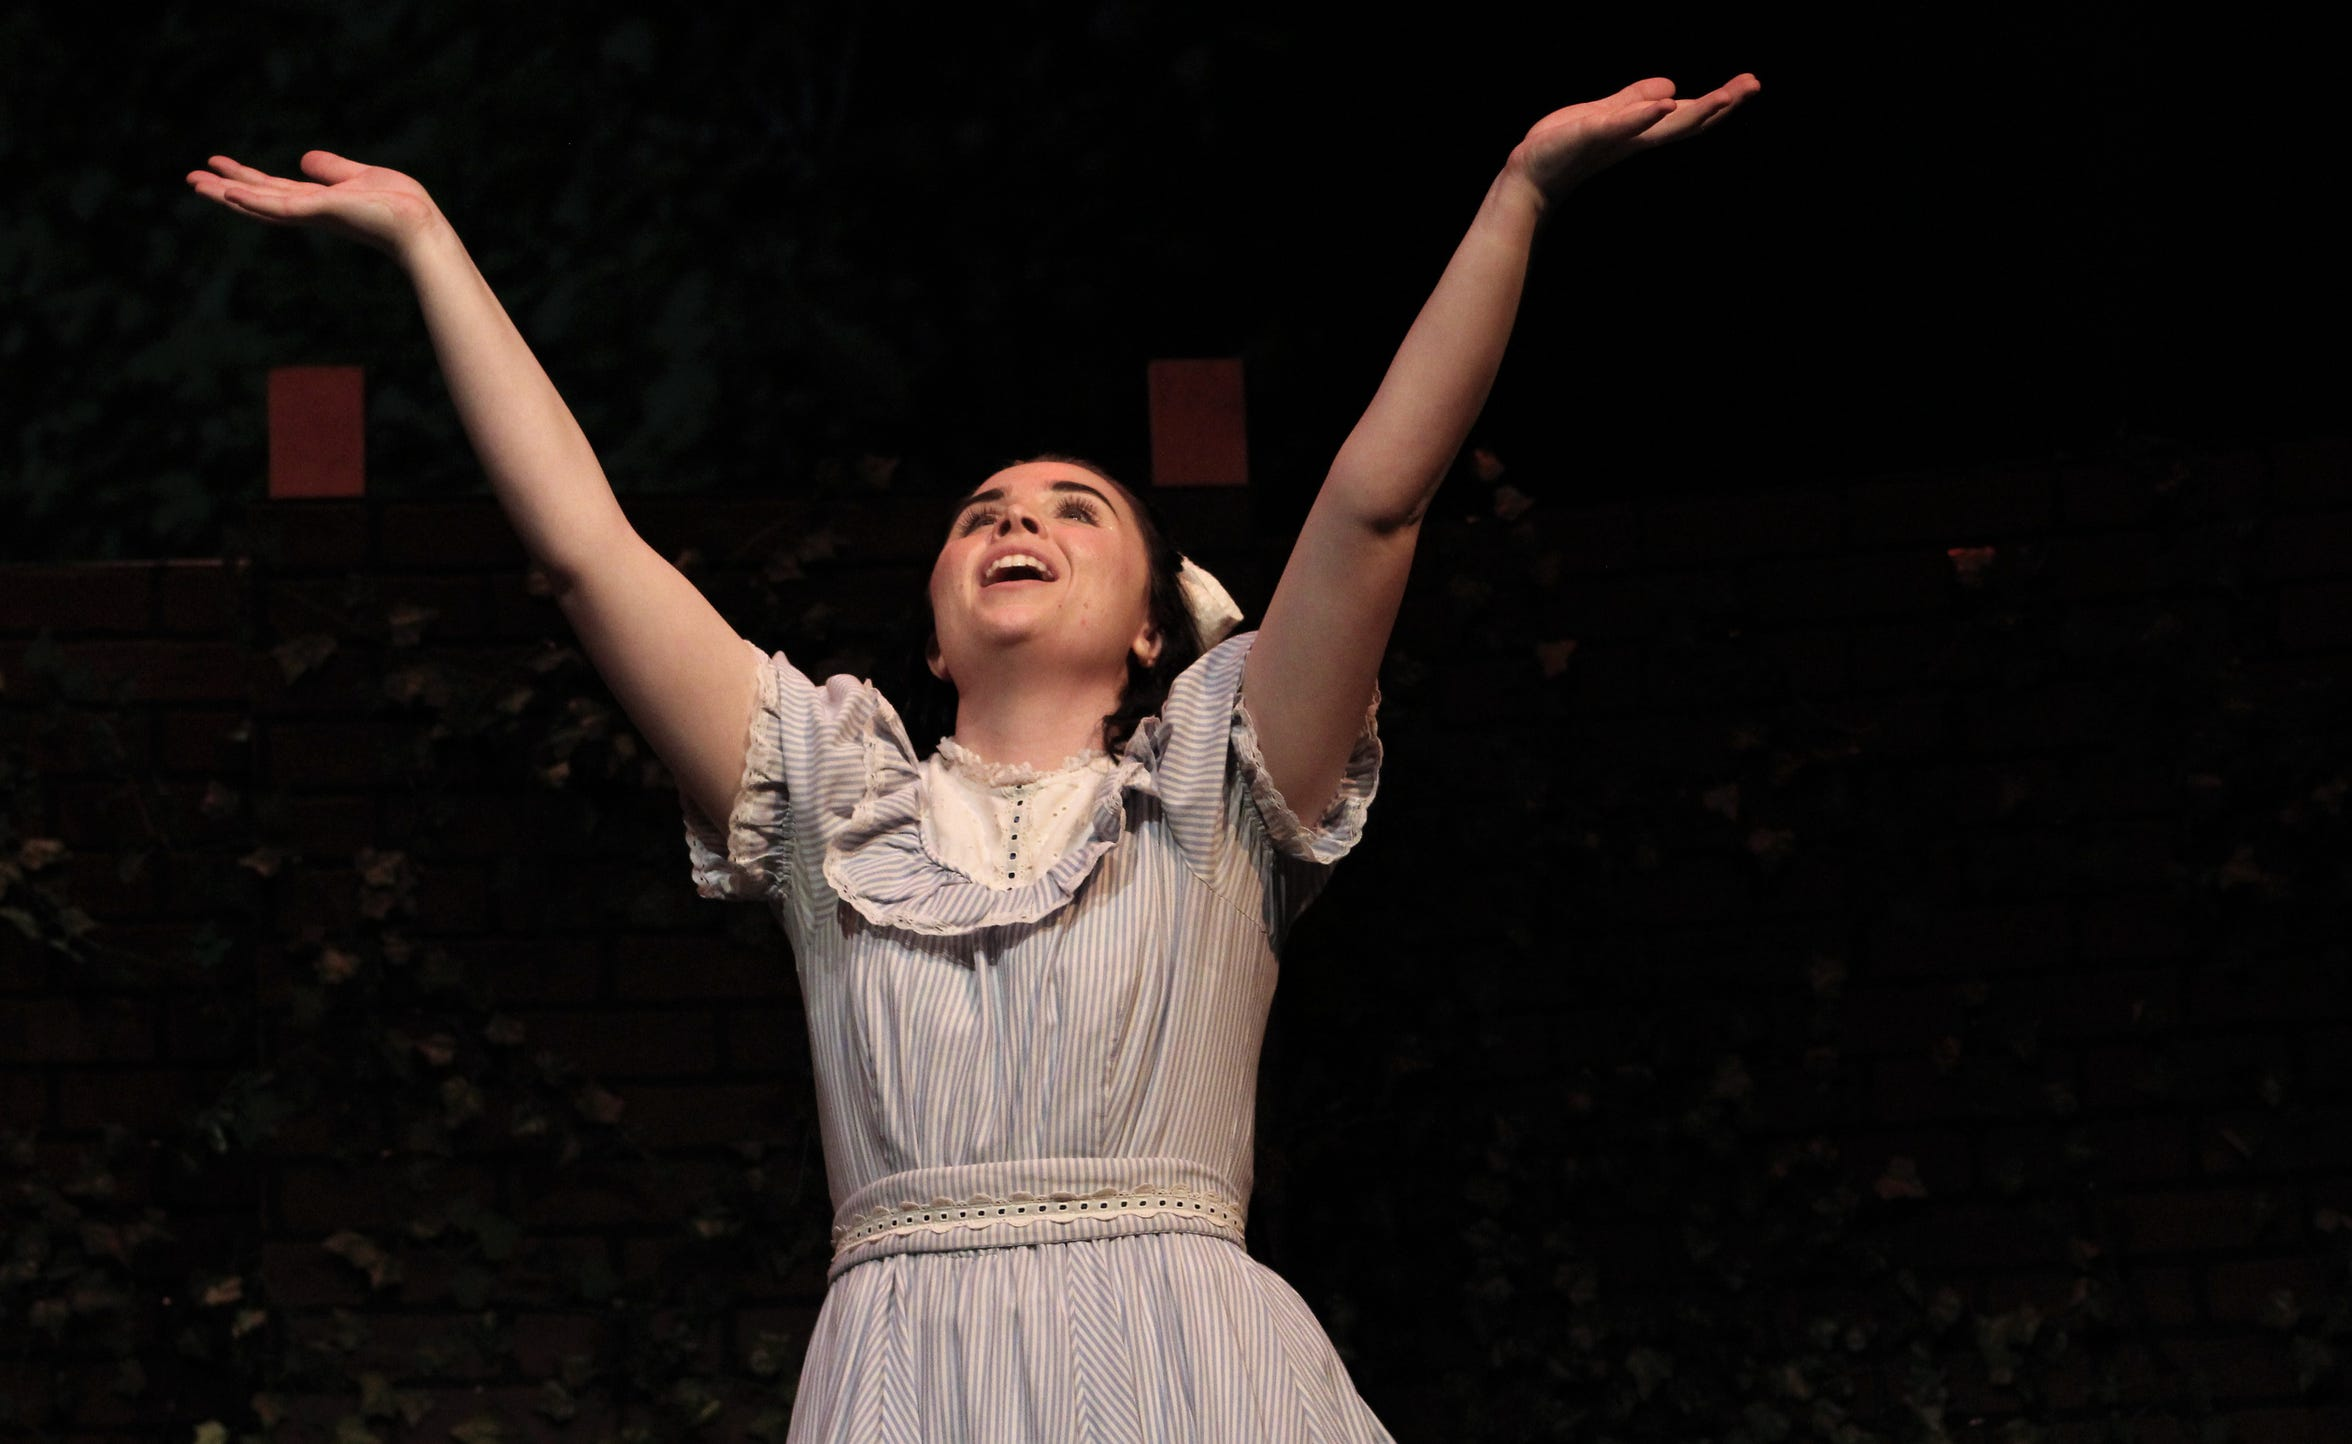 """Mary (Shelby Walker) raises her arms in joy in this rehearsal scene from """"The Secret Garden."""""""